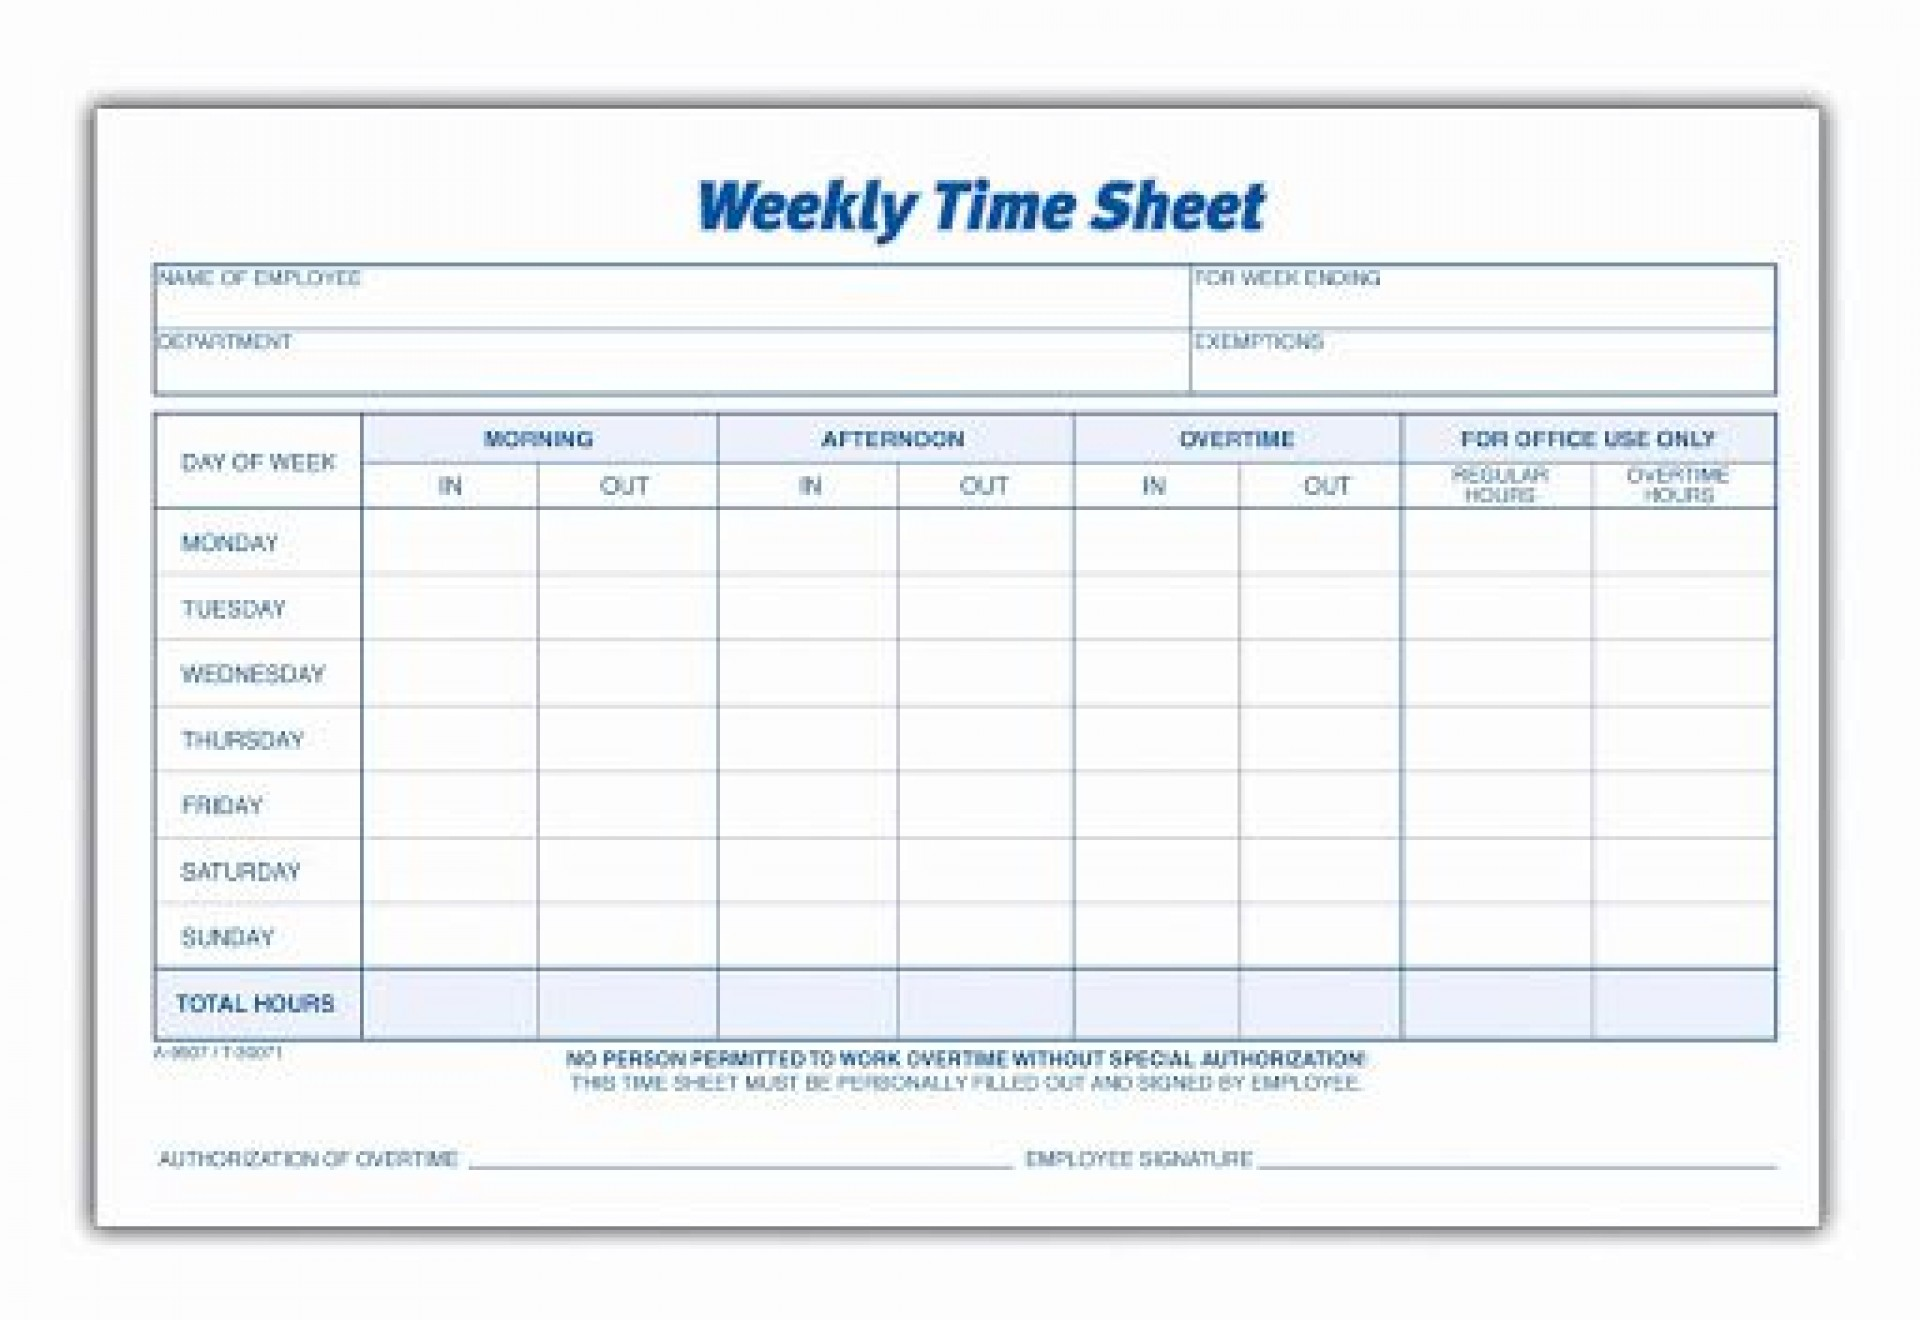 009 Remarkable Multiple Employee Time Card Template Highest Clarity 1920